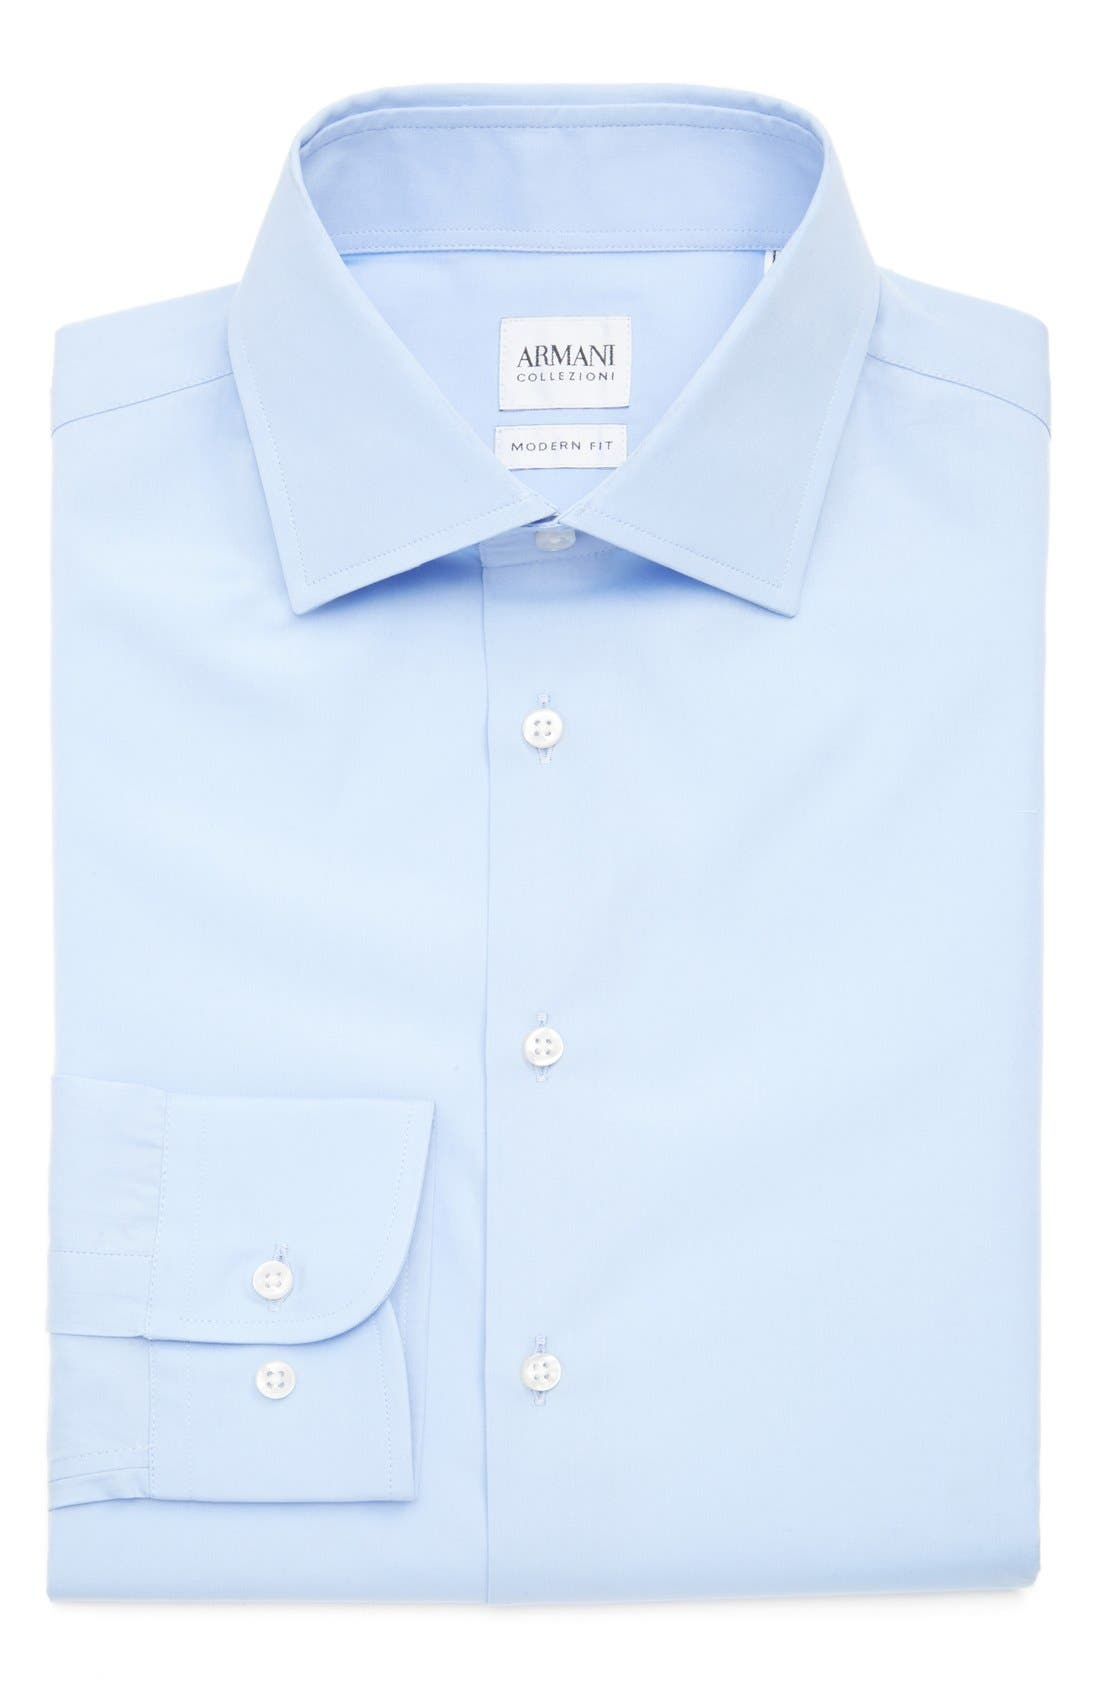 ARMANI COLLEZIONI Trim Fit Dress Shirt